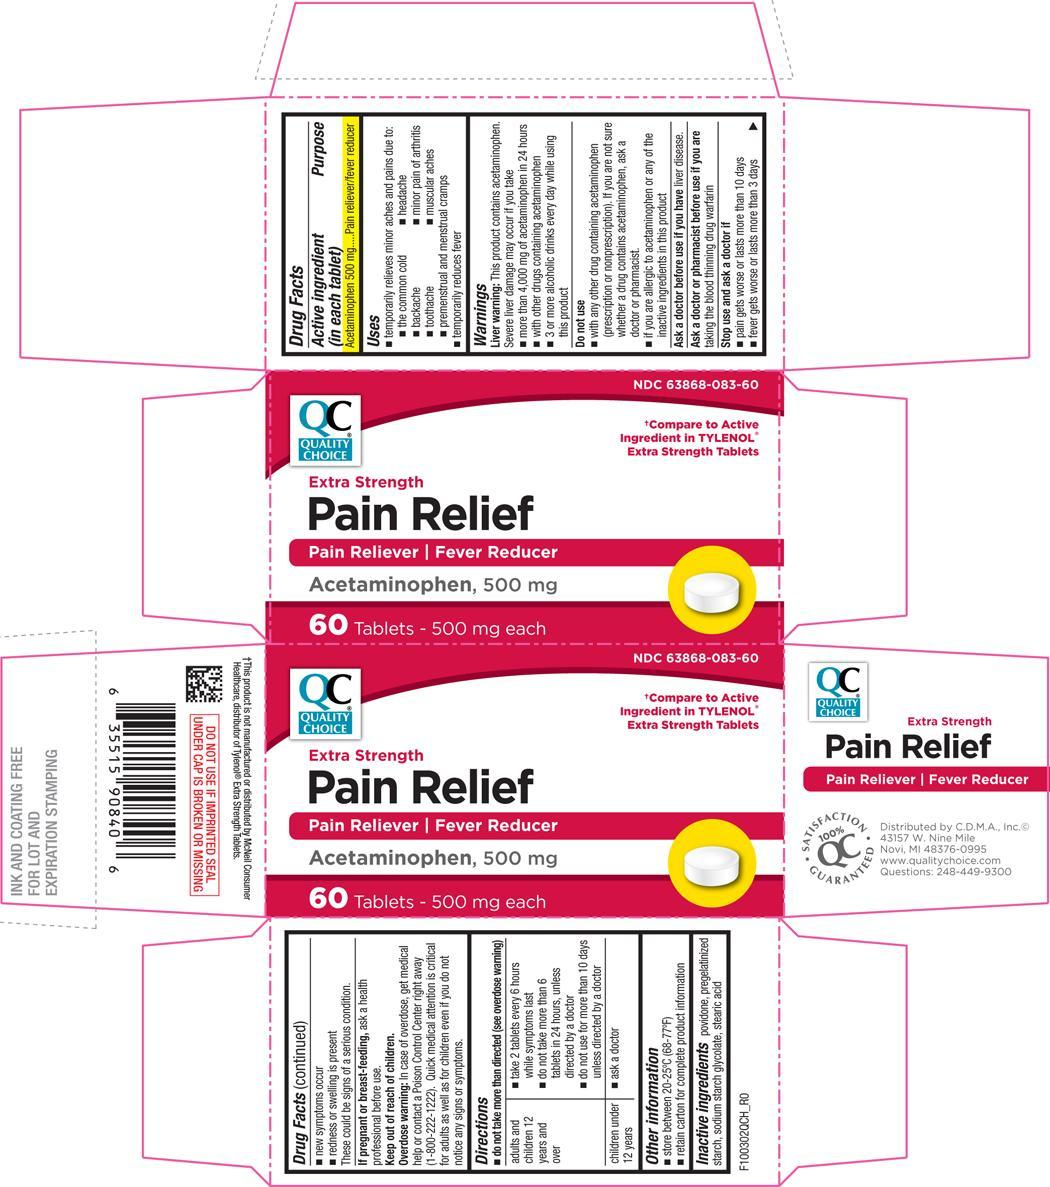 Pain Relief Extra Strength (Acetaminophen) Tablet [Chain Drug Marketing Association]